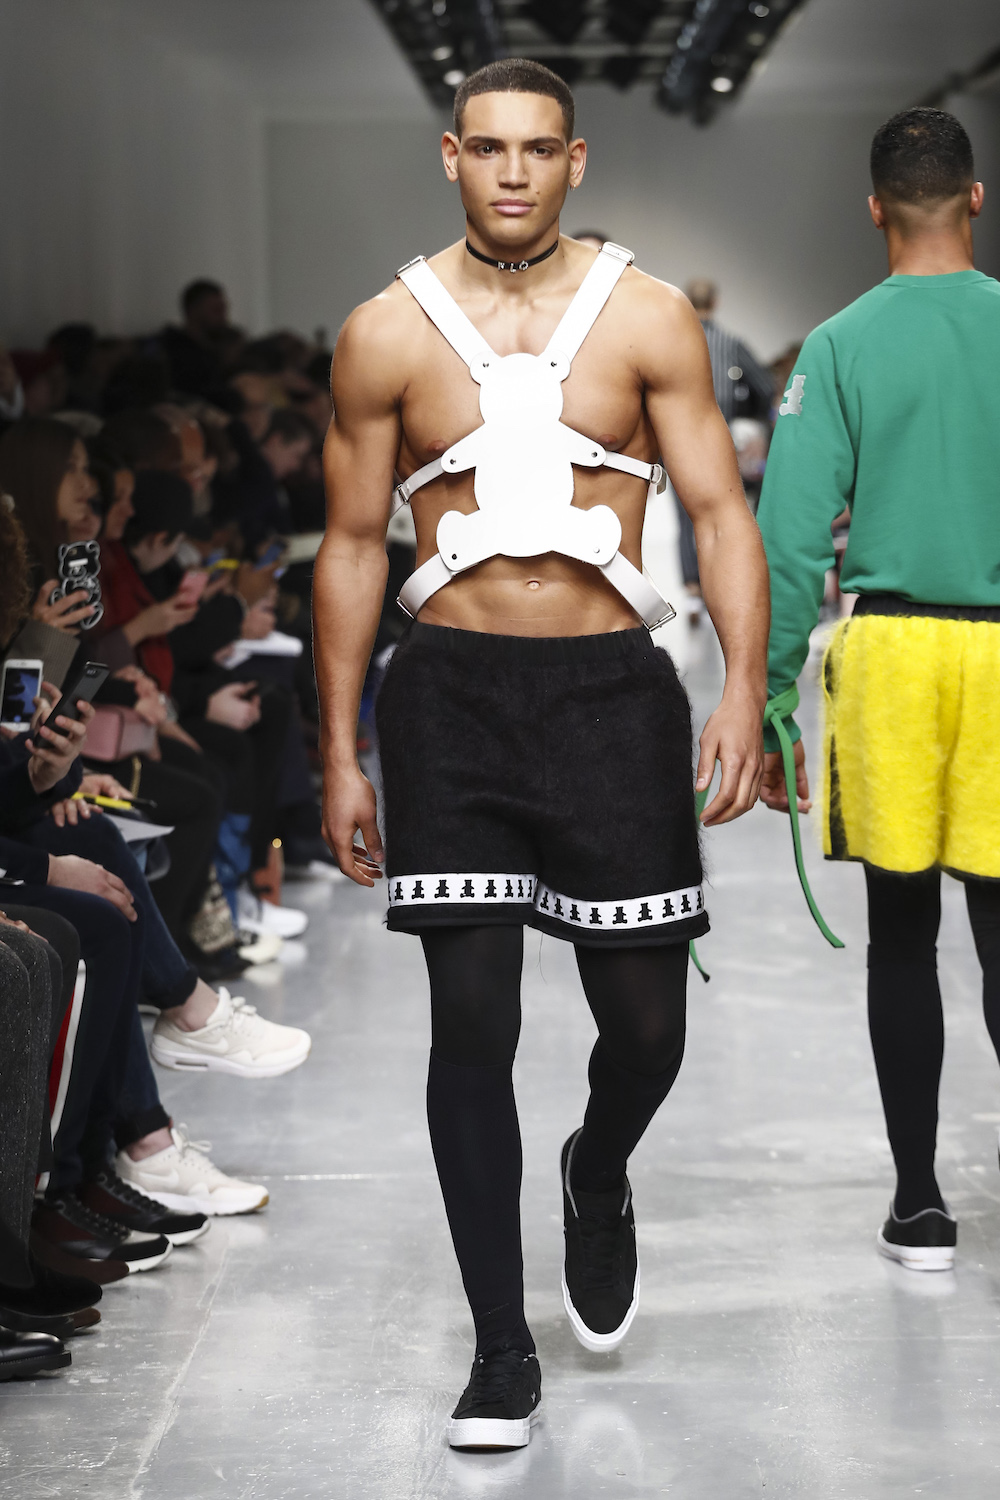 Bobby Abley Mighty Morphin Power Rangers - 1839472